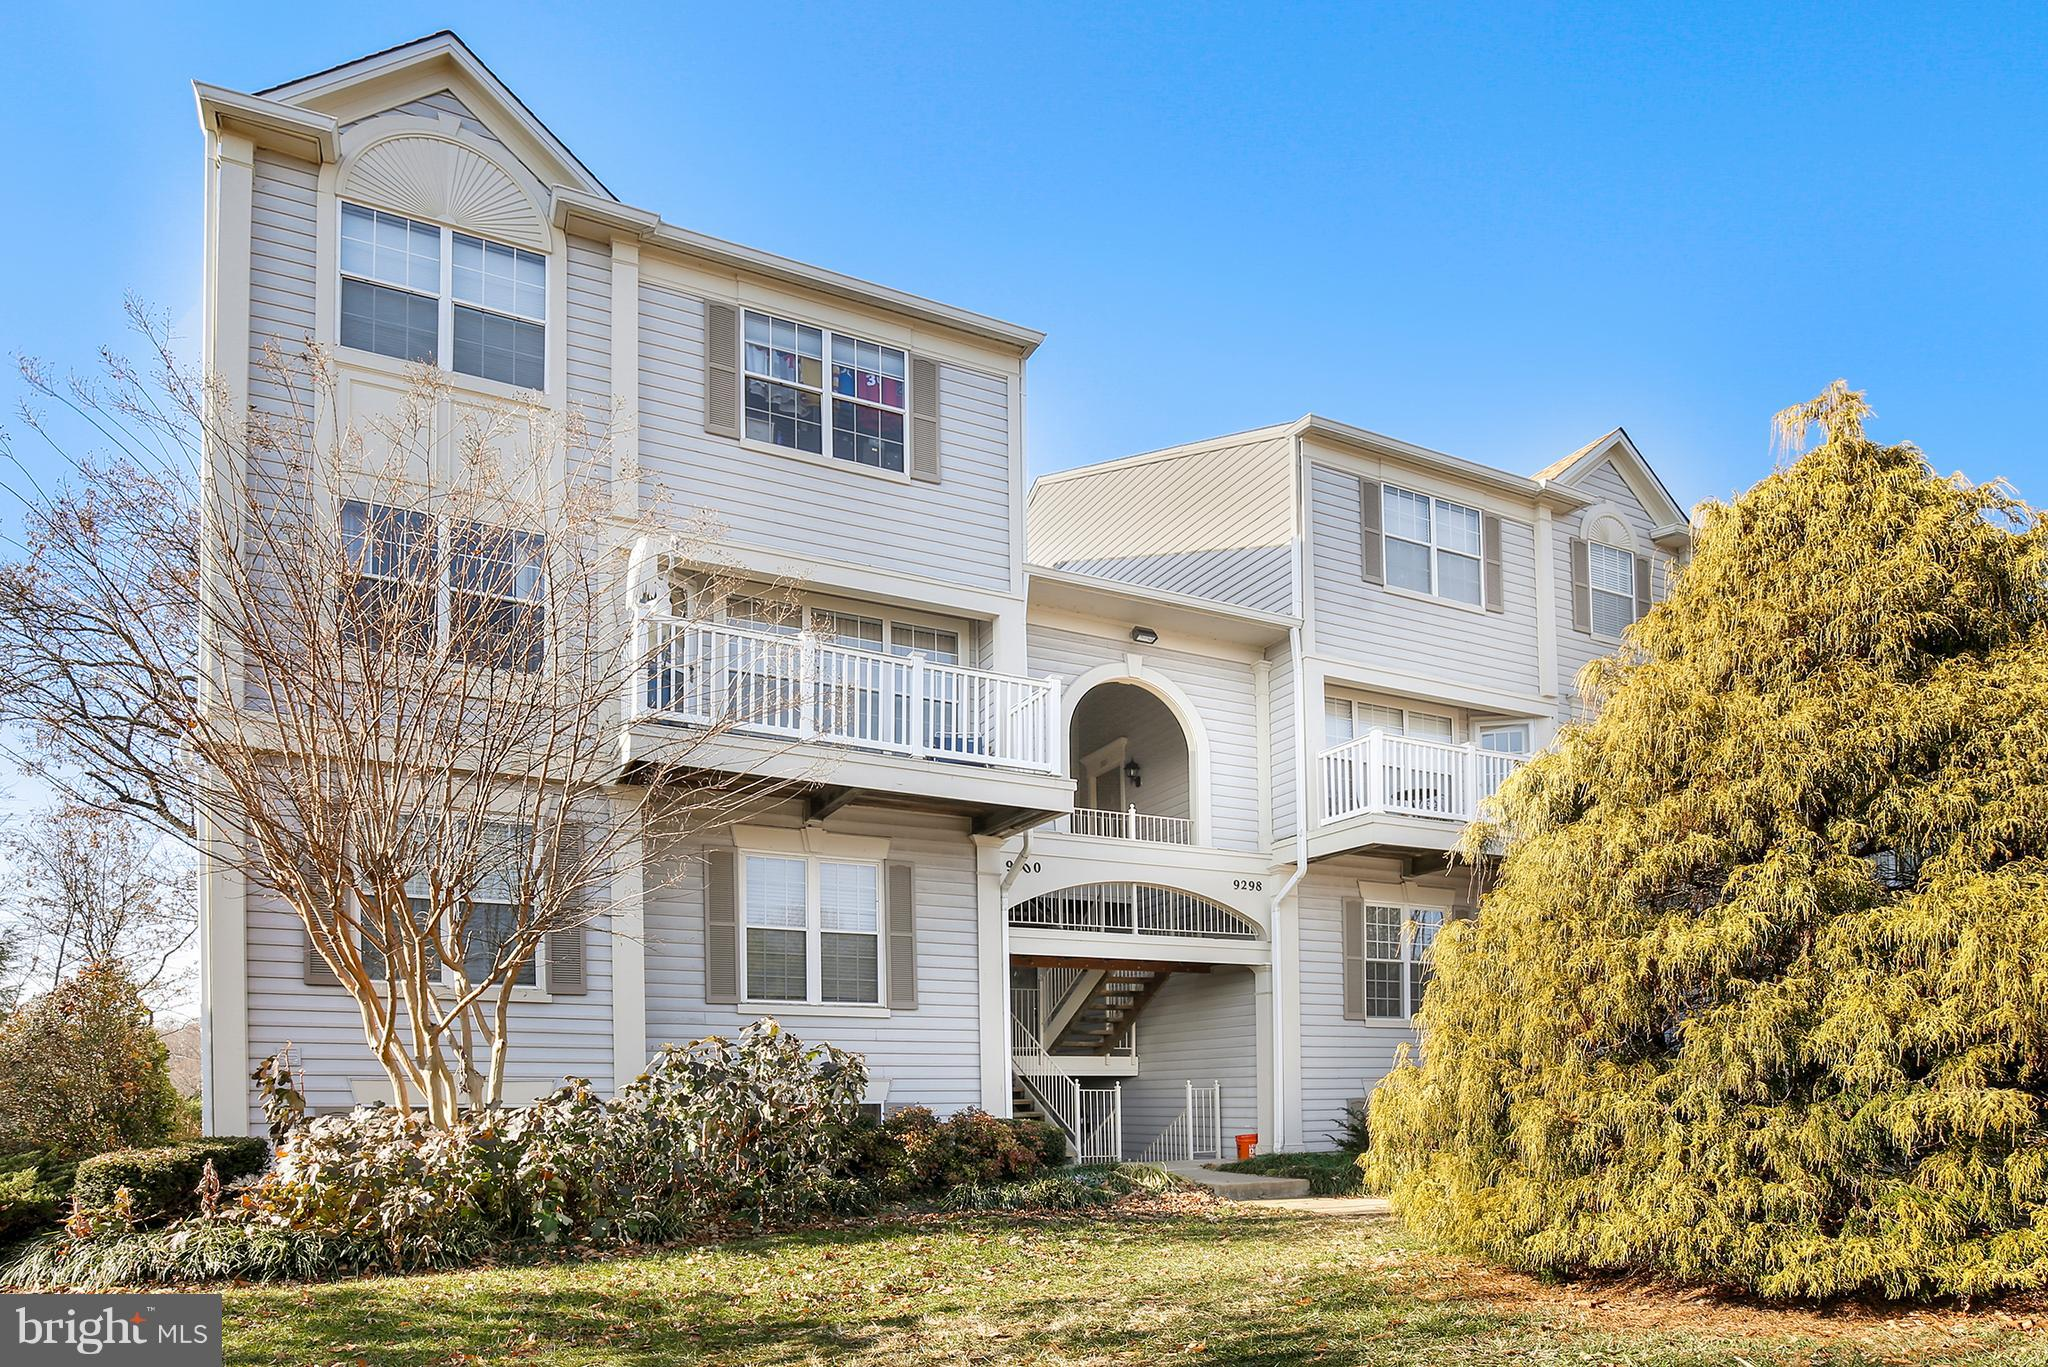 Two bedroom, two bath condo with 2018 updates to kitchen, including granite counters, stainless appliances, sink & faucet. Recent paint, gas furnace replaced in 2014. Convenient assigned parking, two pets are permitted in this condo! Very convenient to Interstate 95, 395, 495, Fort Belvoir, GSA~